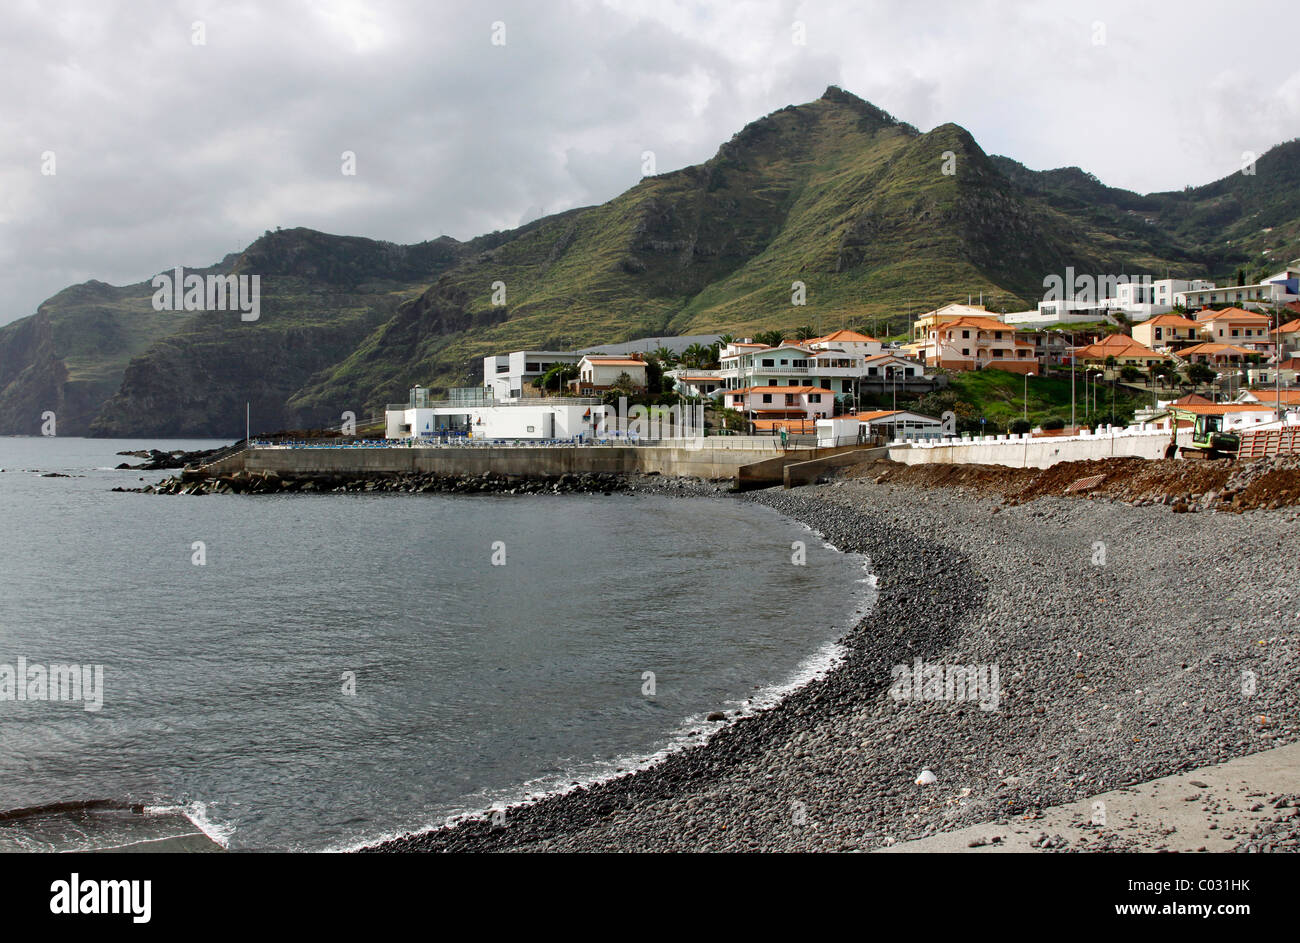 Canical, Madeira, Atlantic Ocean, Portugal, Europe Stock